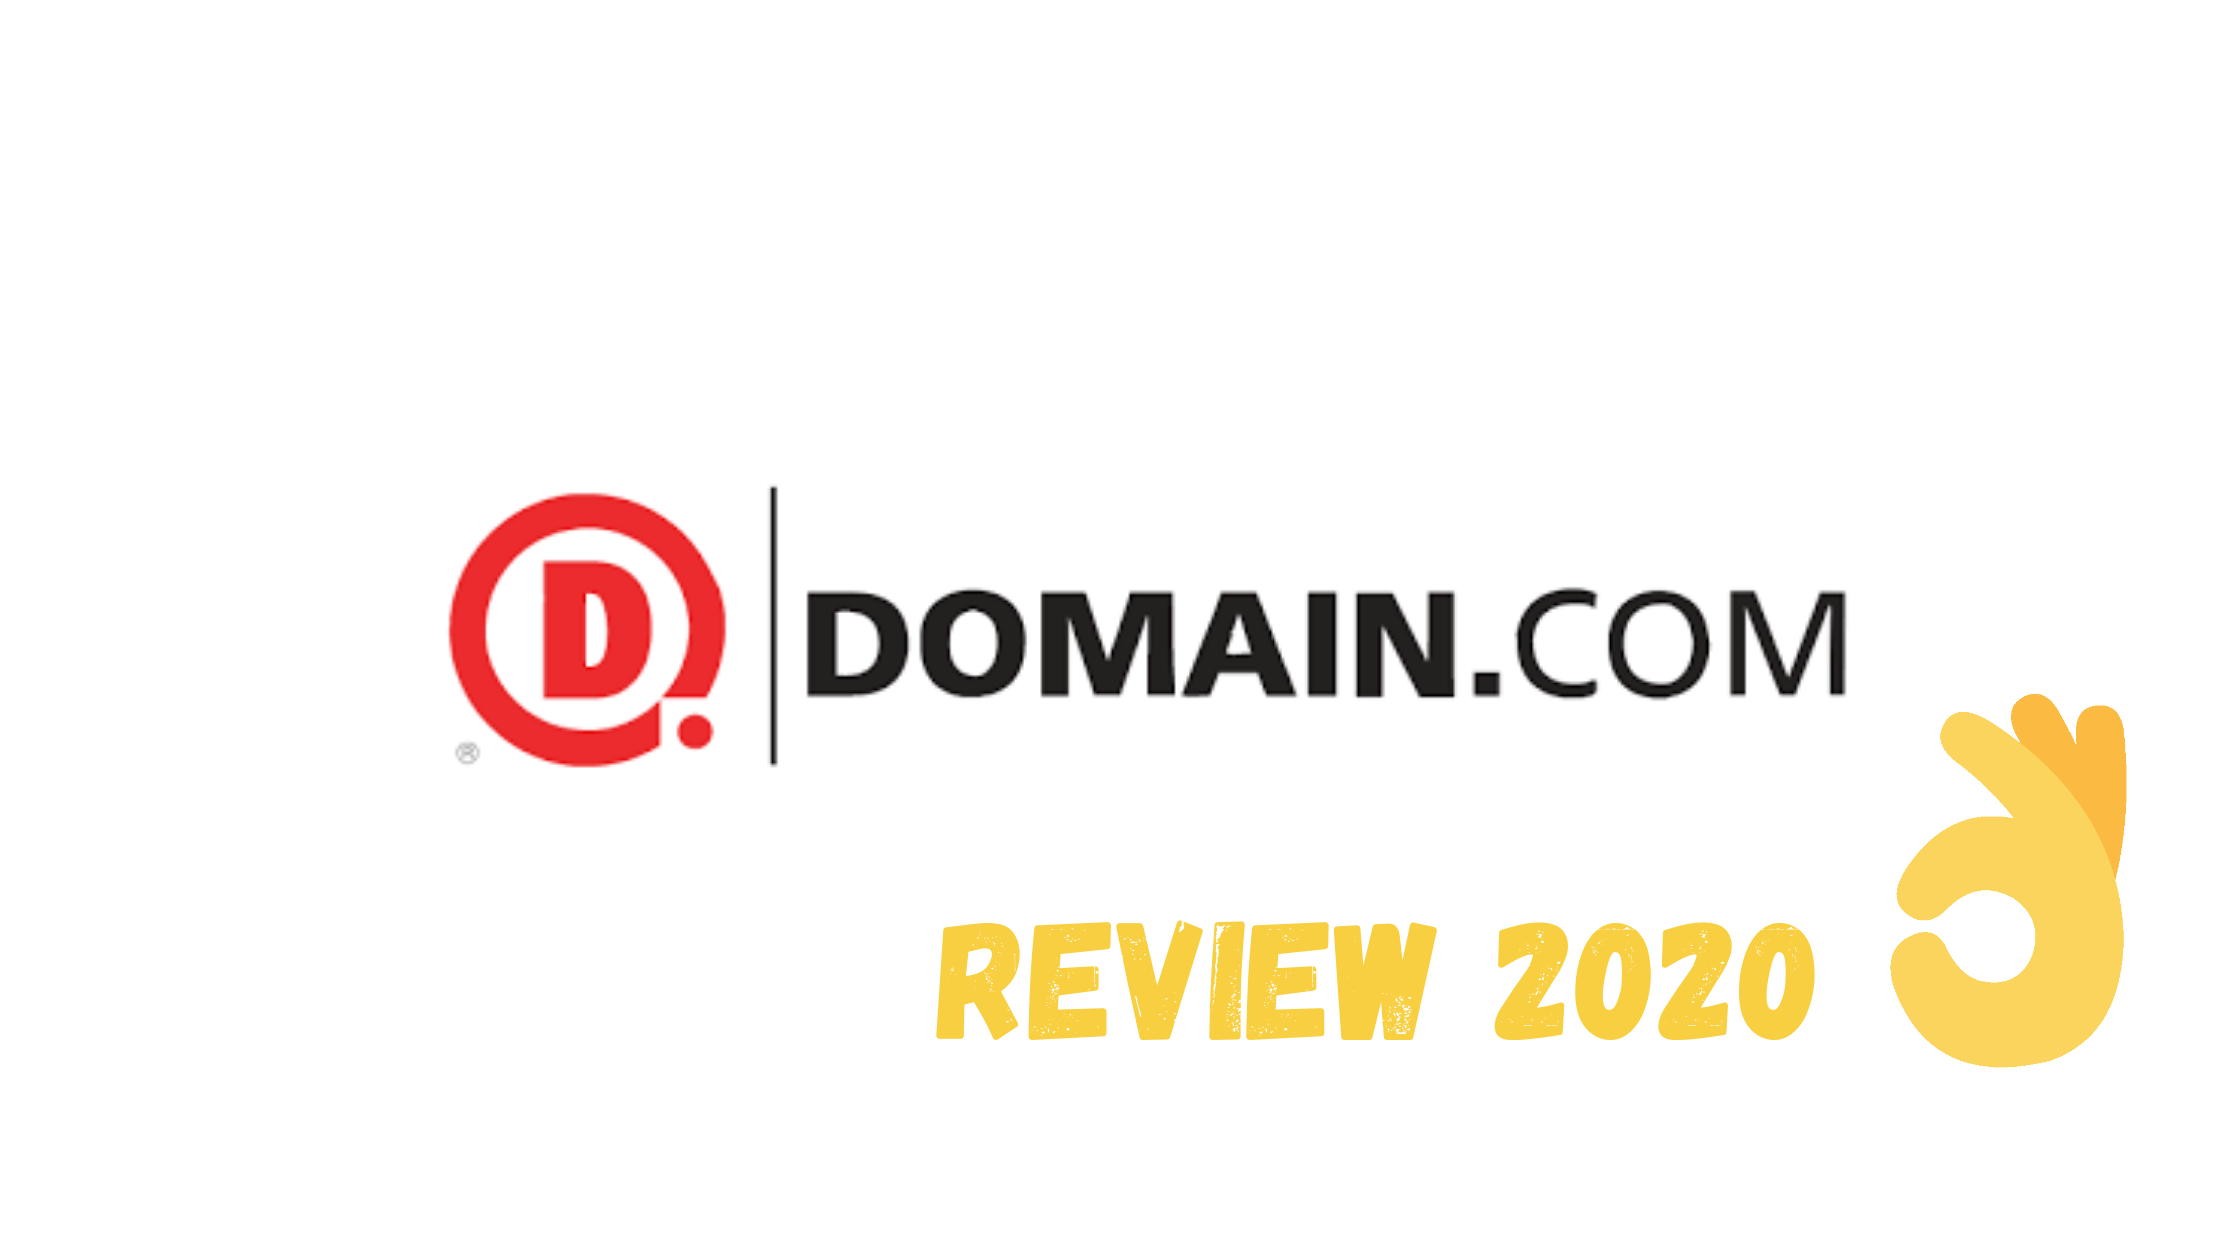 Domain.com Review 2020